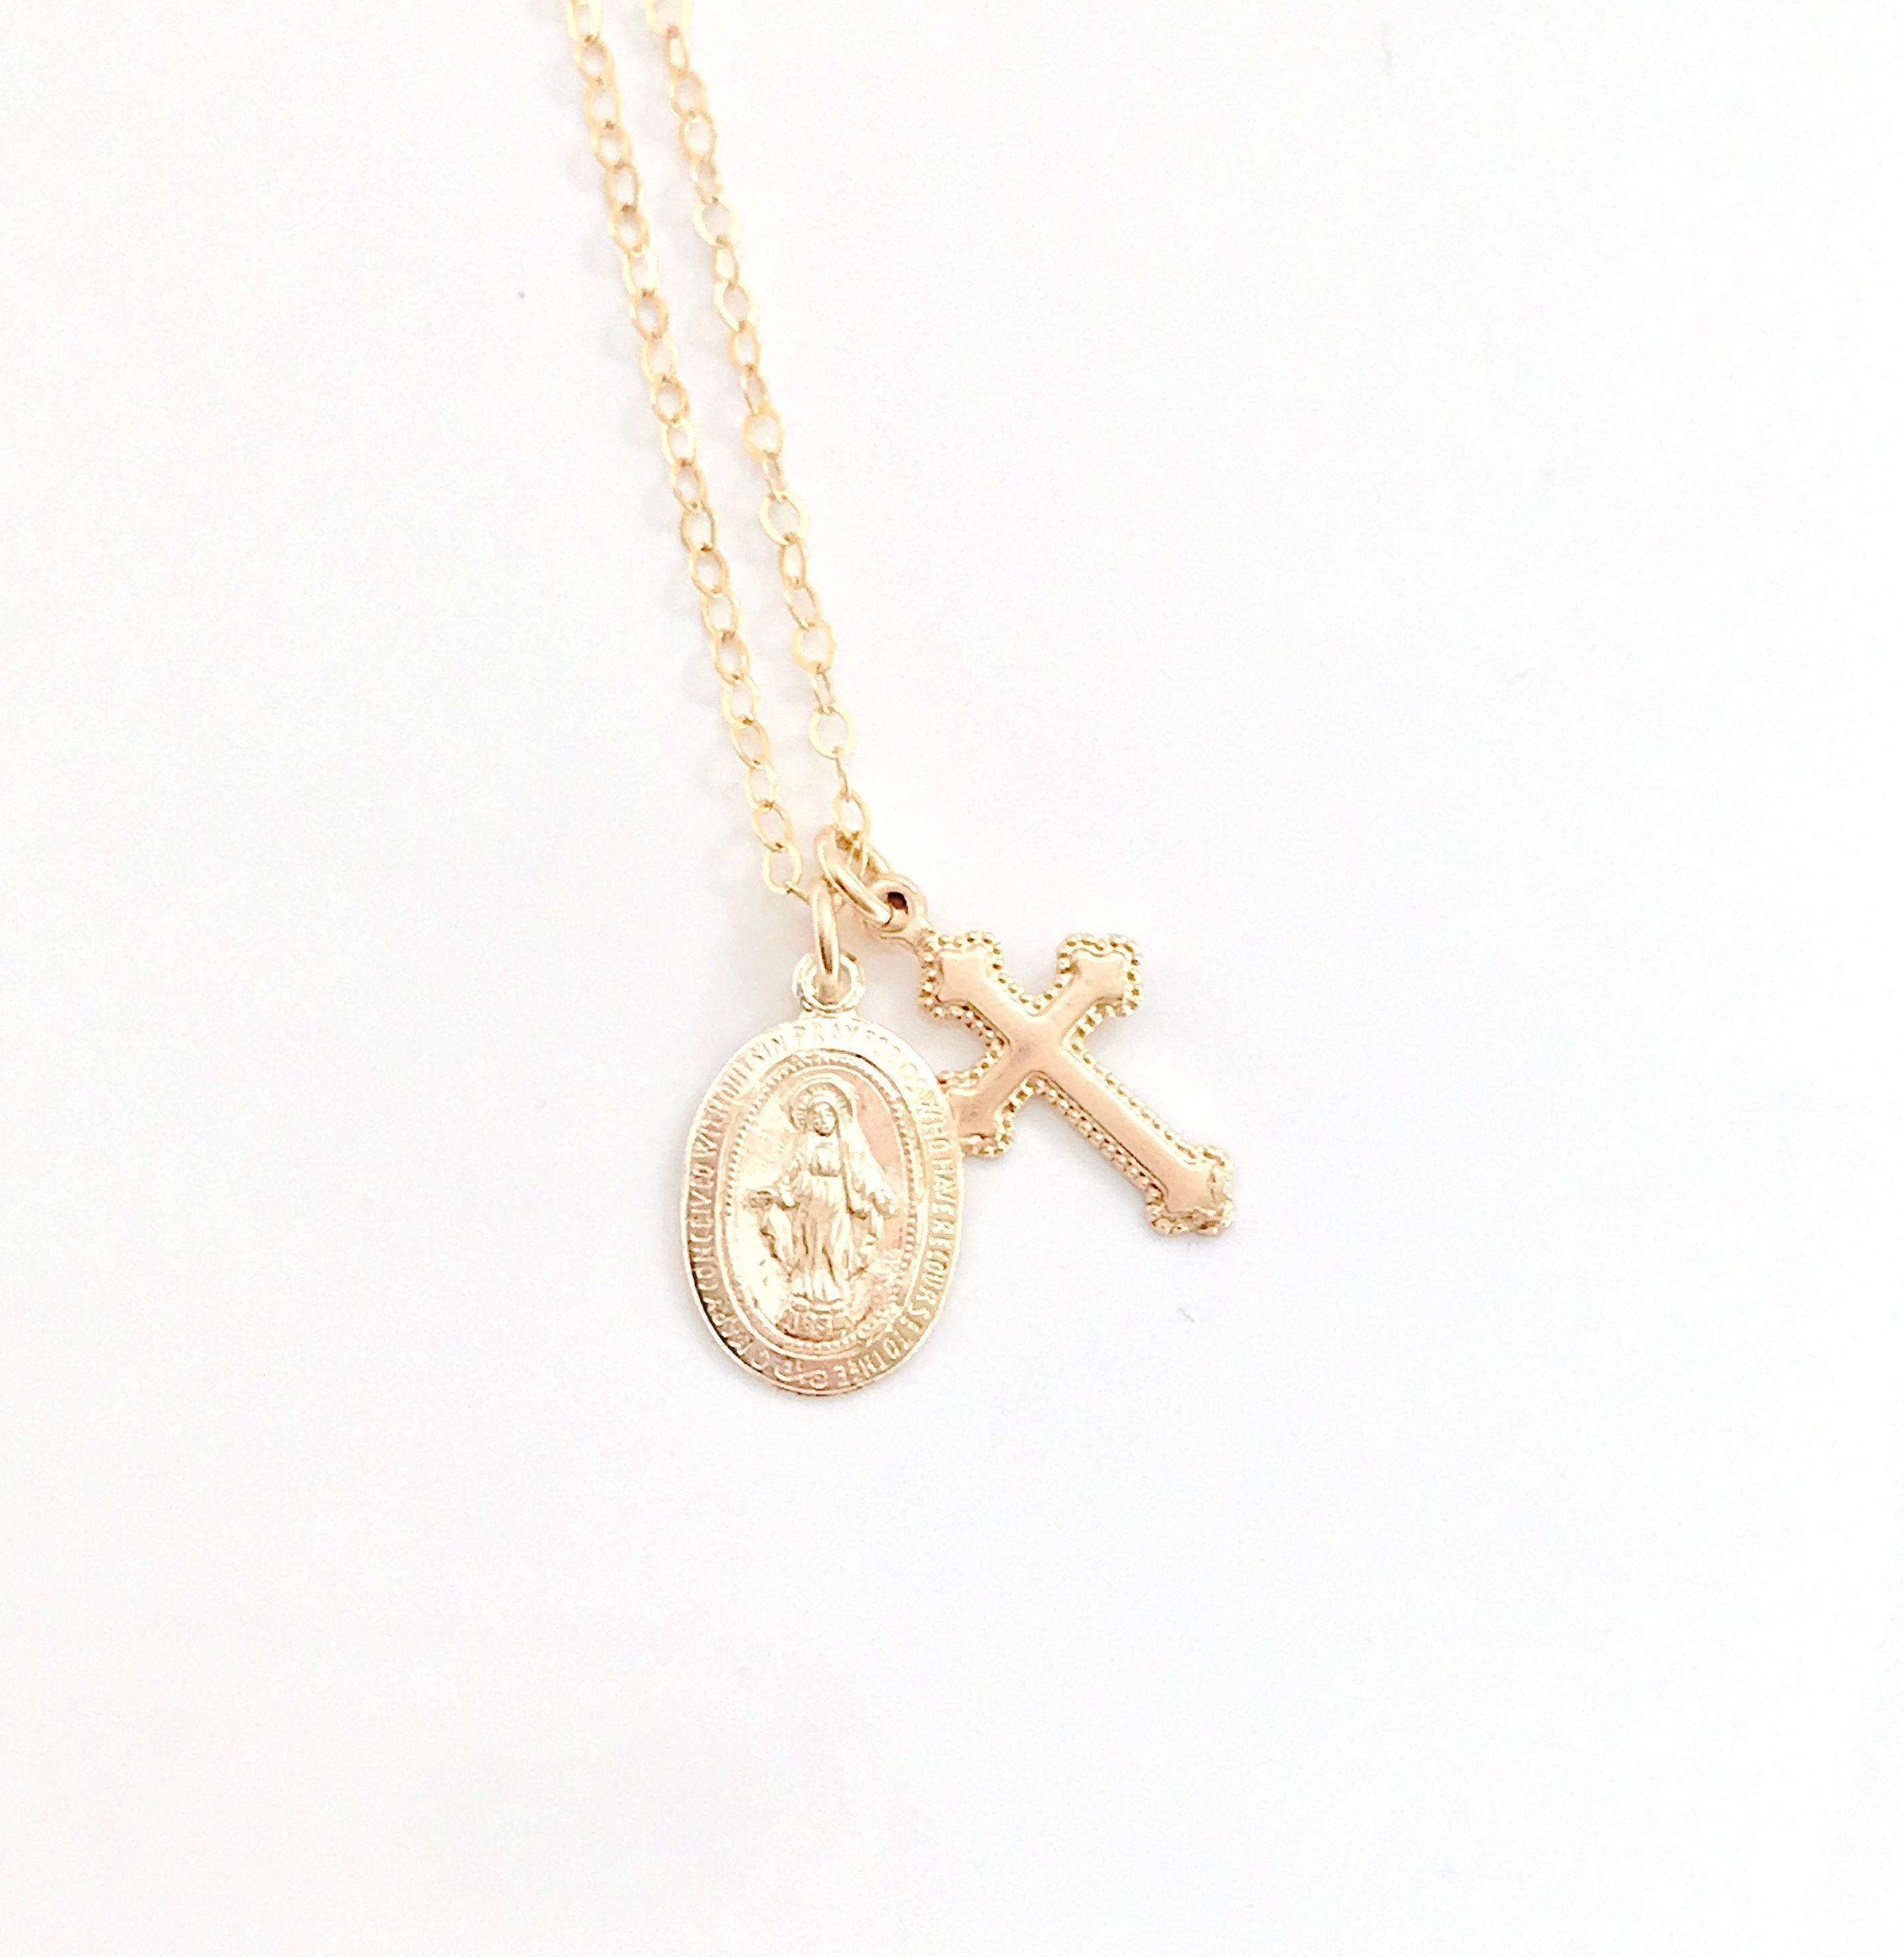 christian washed man pendant religious il gift teen fullxfull necklaces baptism p women necklace